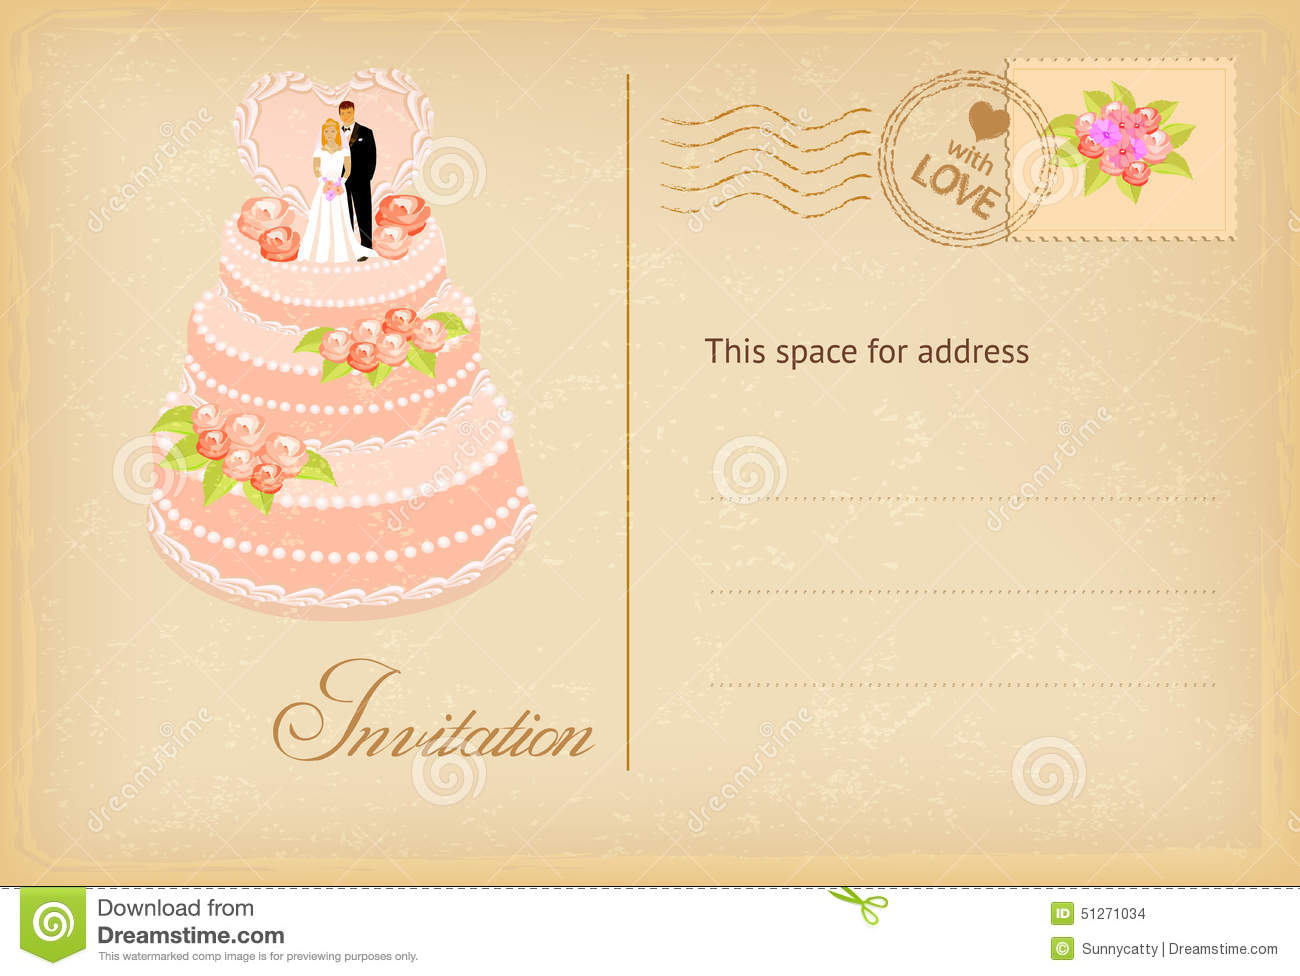 Vintage Wedding Invitation Card Stock Vector - Illustration of ...